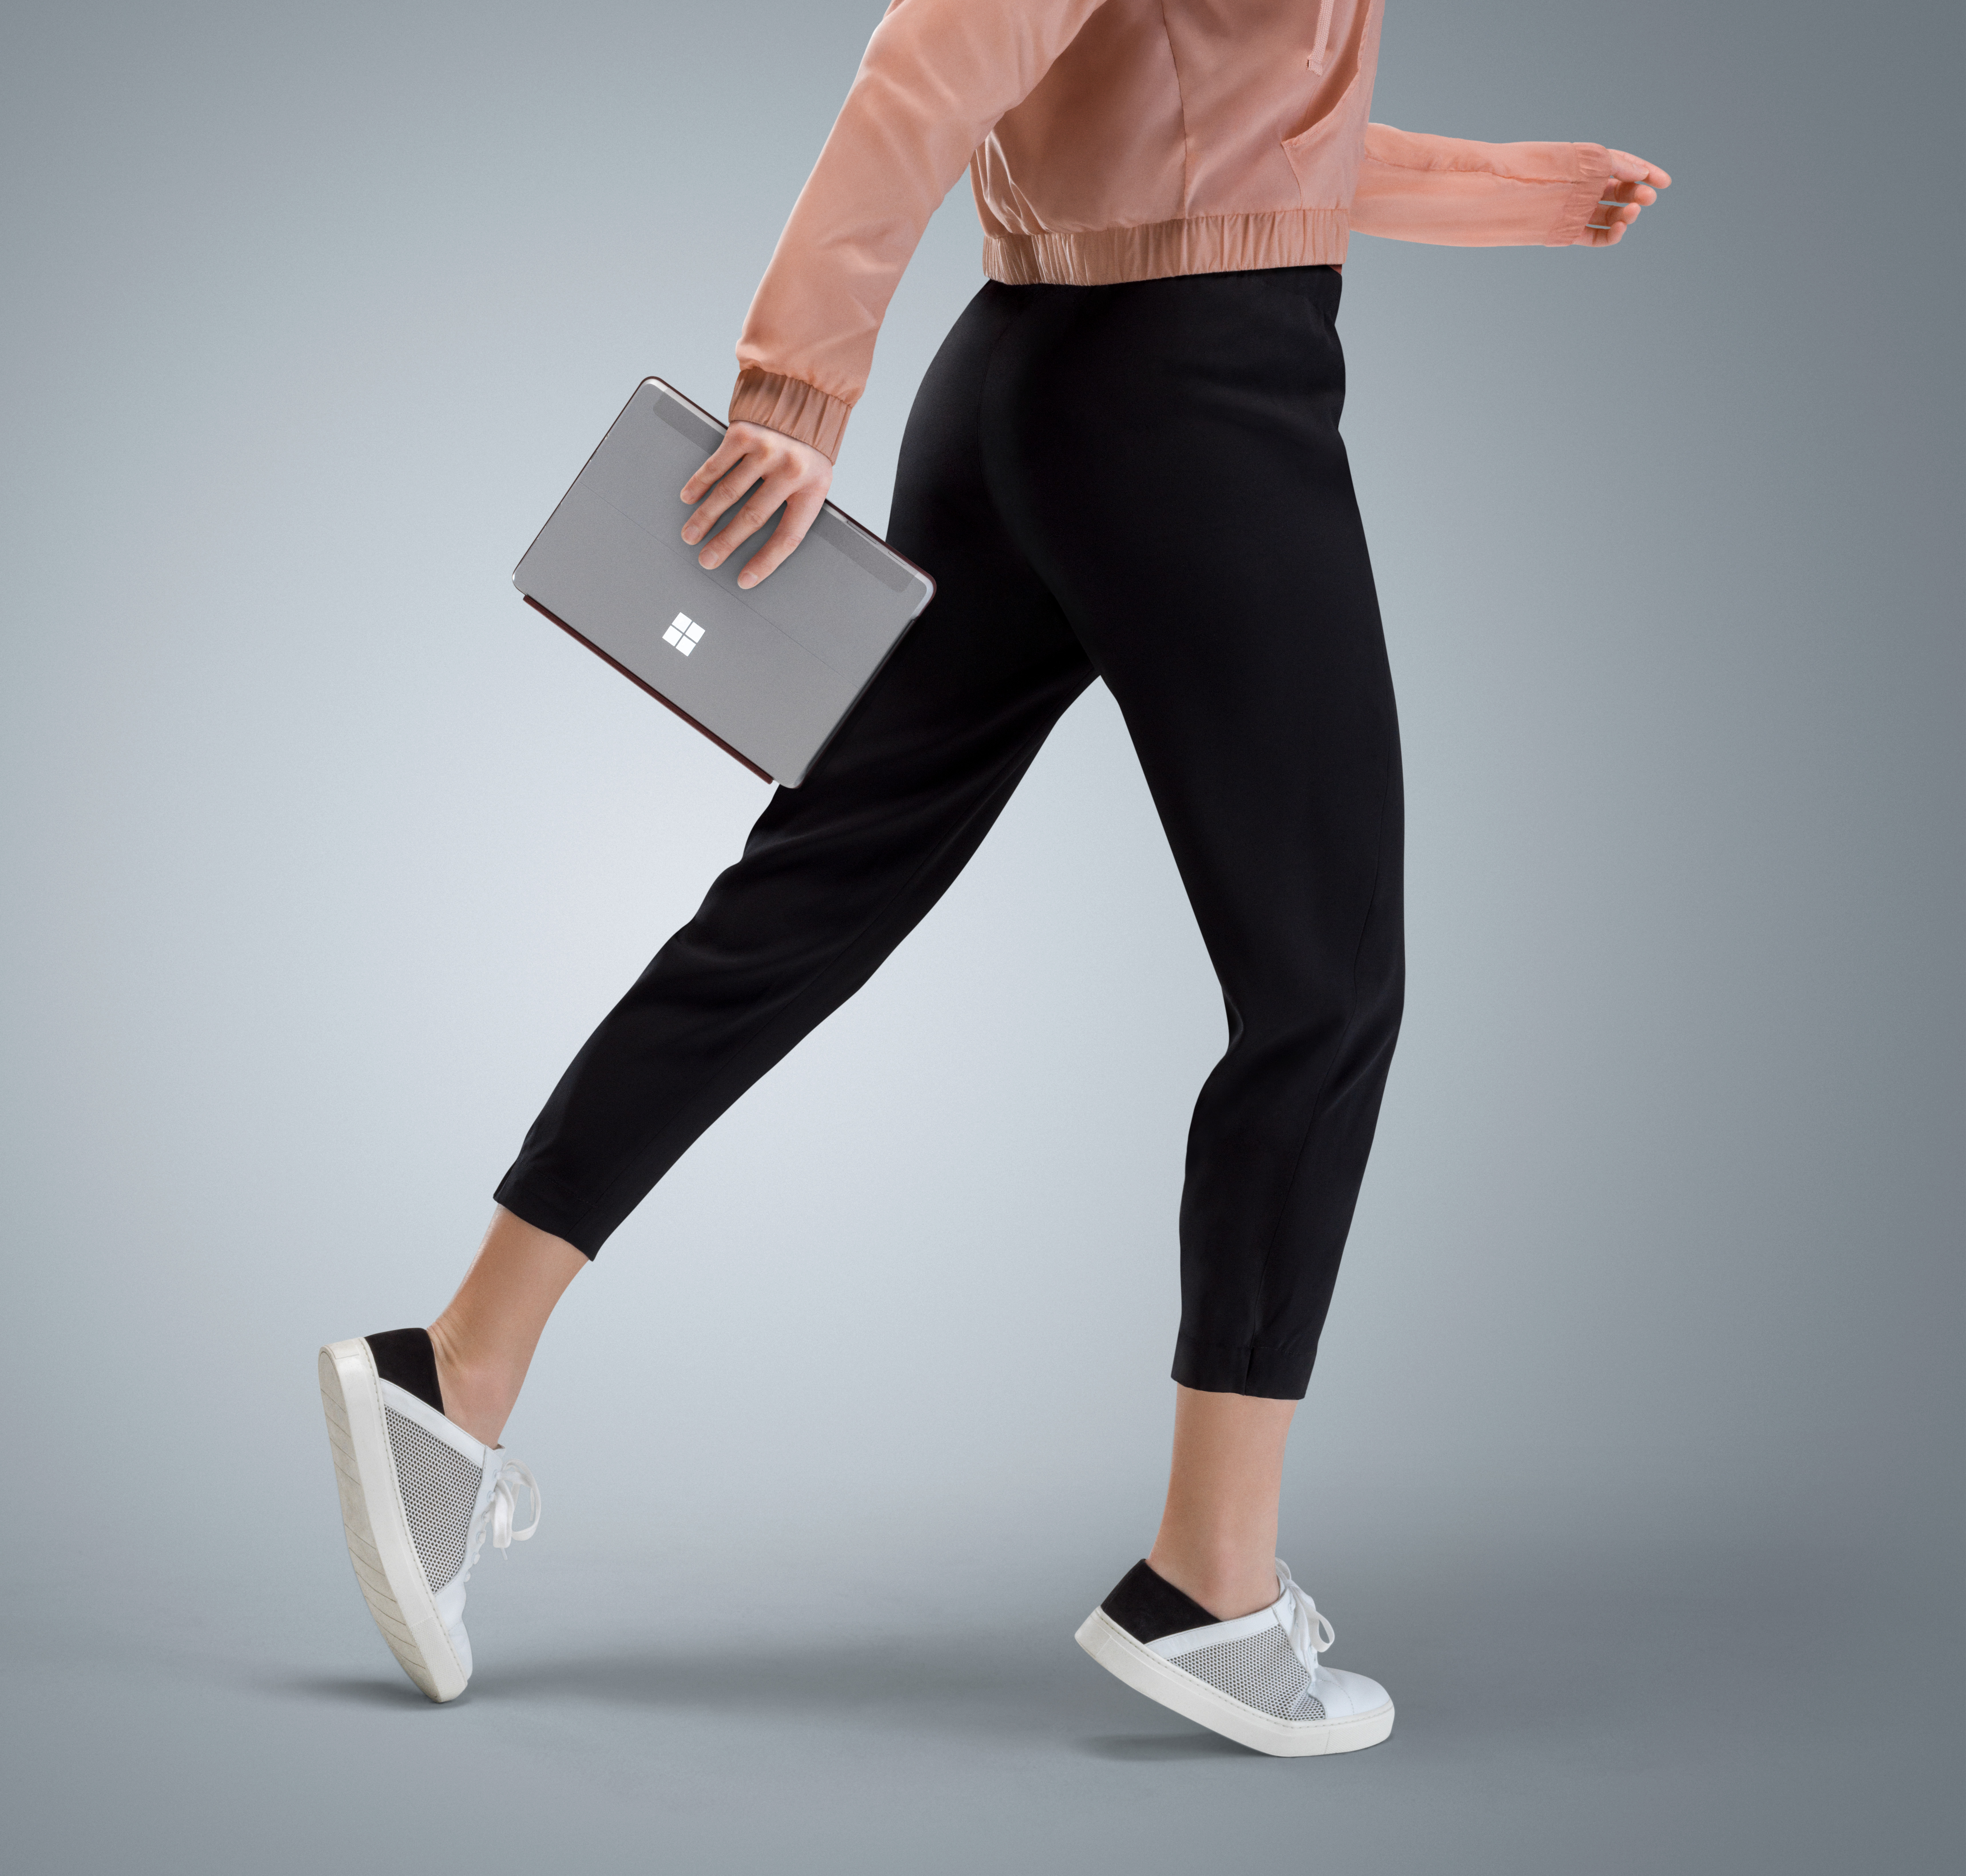 The new Surface Go Image : Microsoft